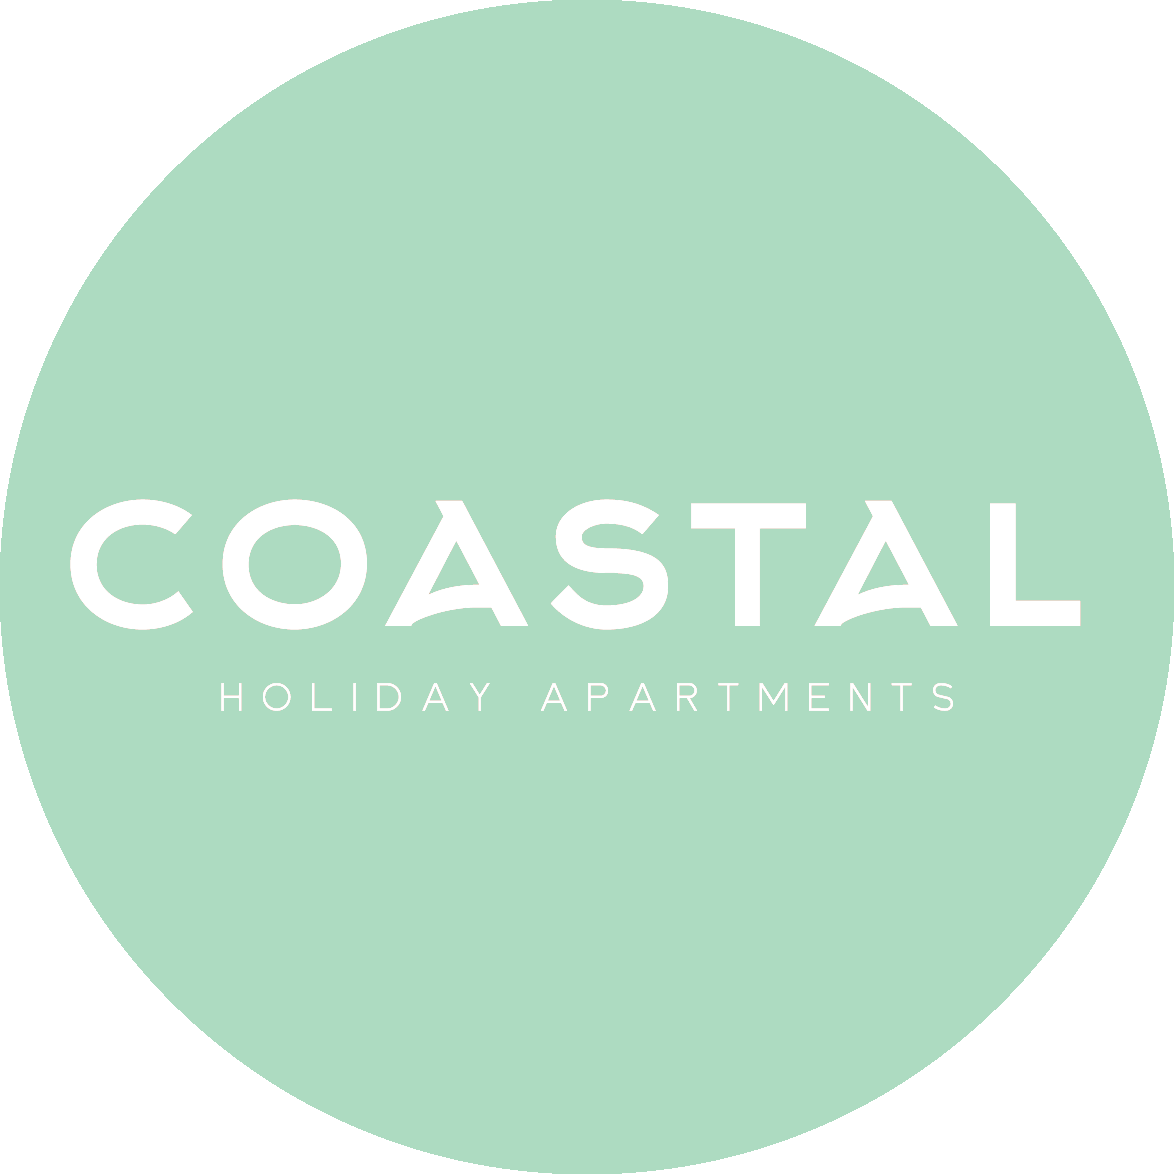 Coastal Holiday Apartments